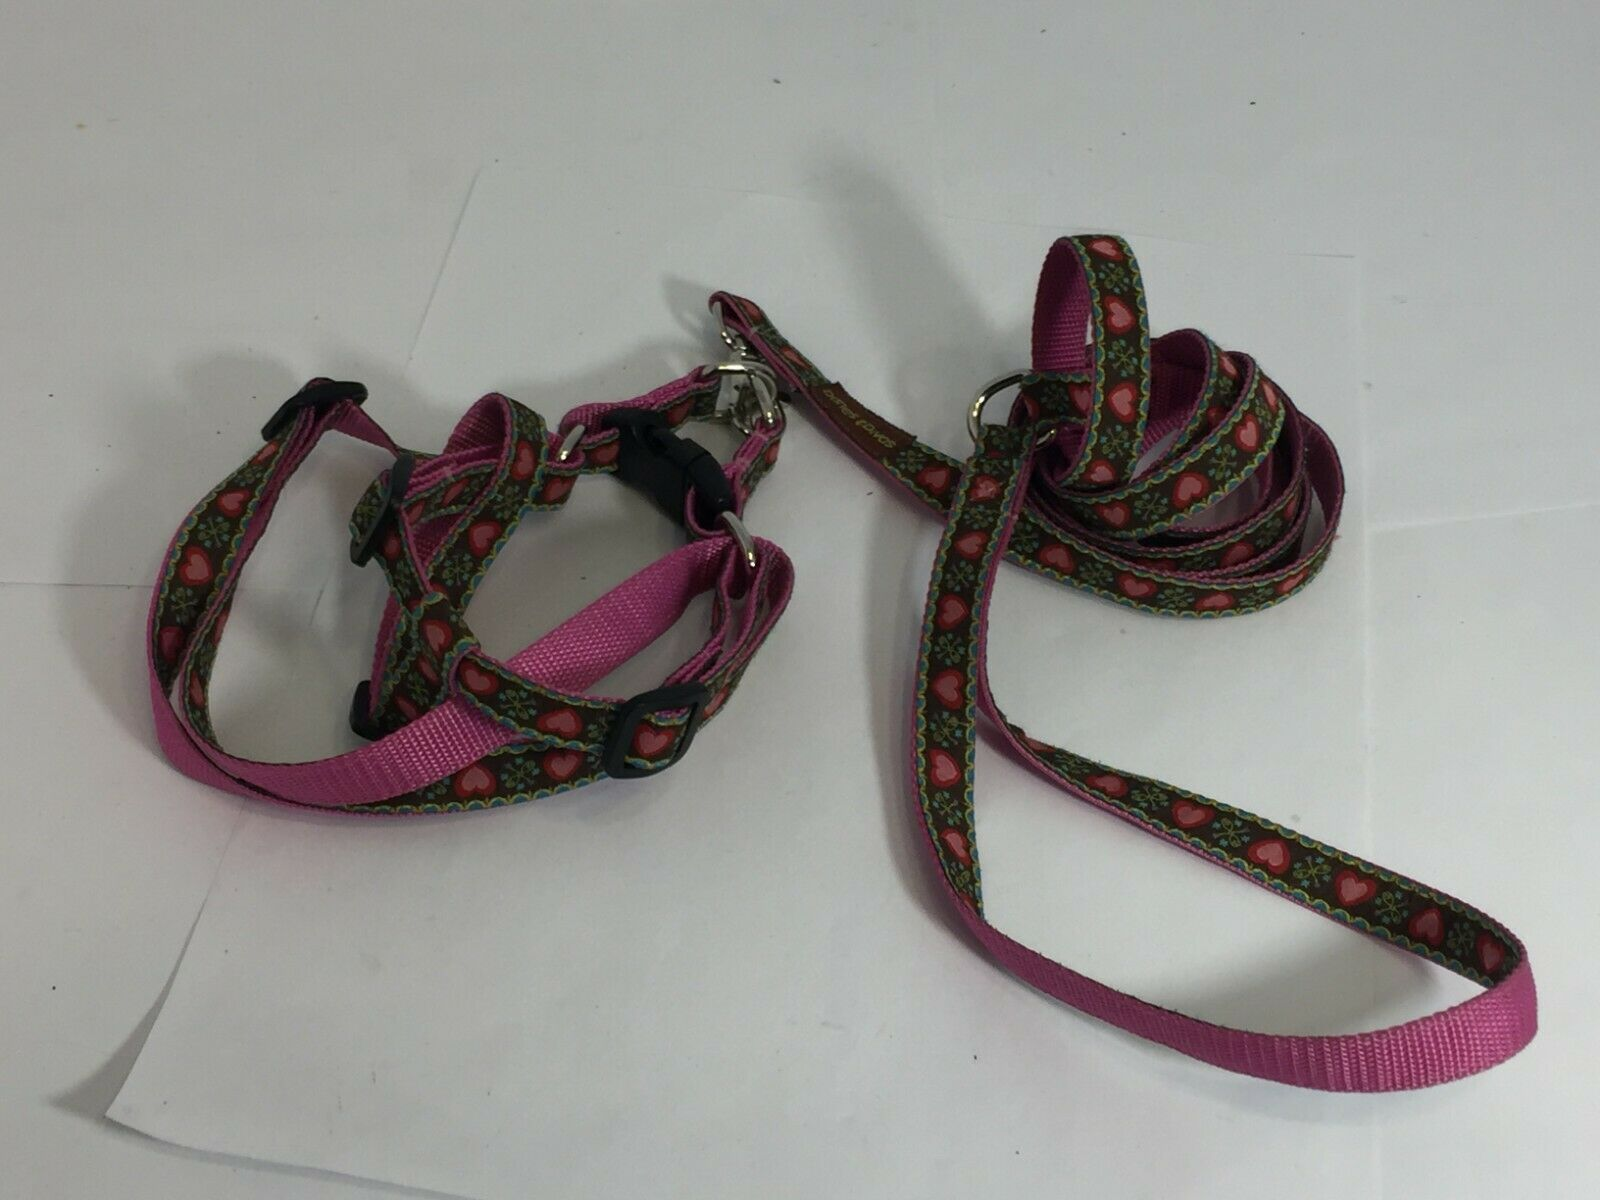 DANES AND DIVAS HARNESS AND LEASH SET BROWN HEARTS PATTERN SMALL DOG 10 LBS